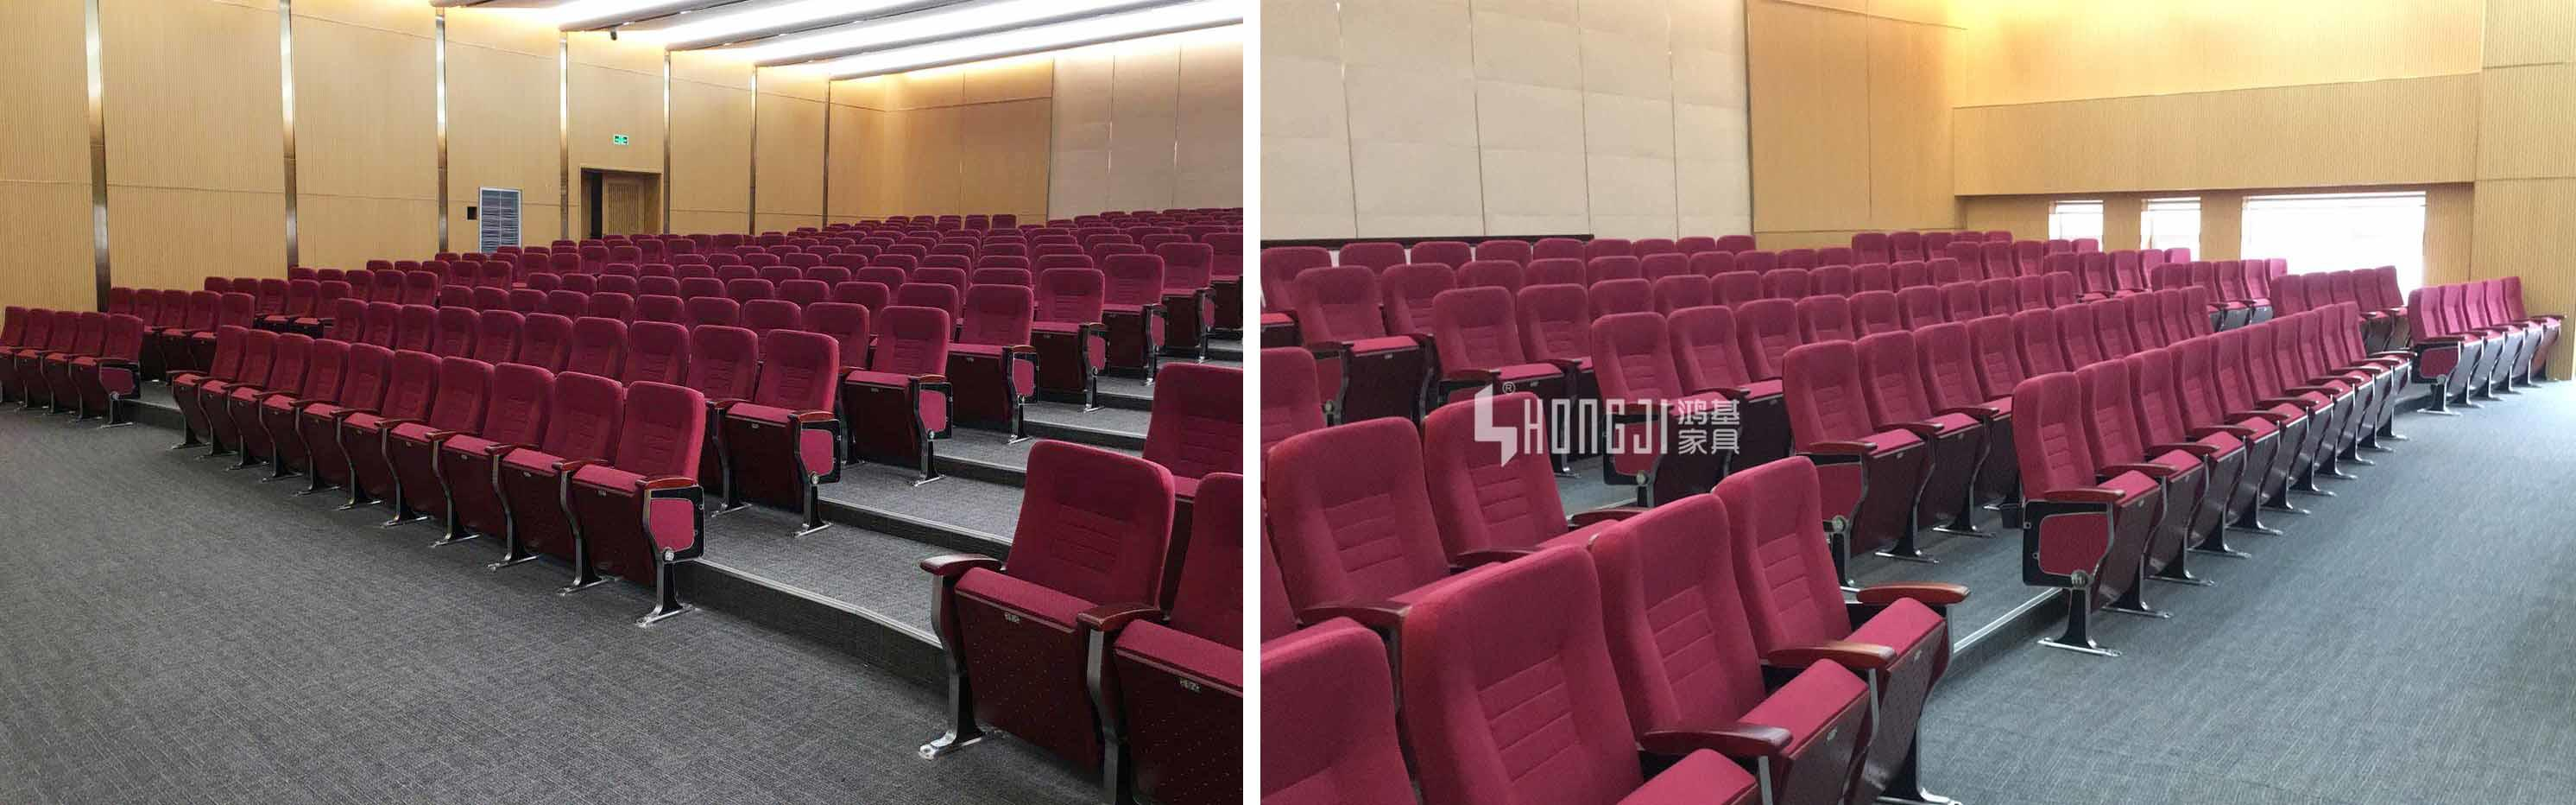 HONGJI elegant stadium theater seating furniture manufacturer for cinema-2